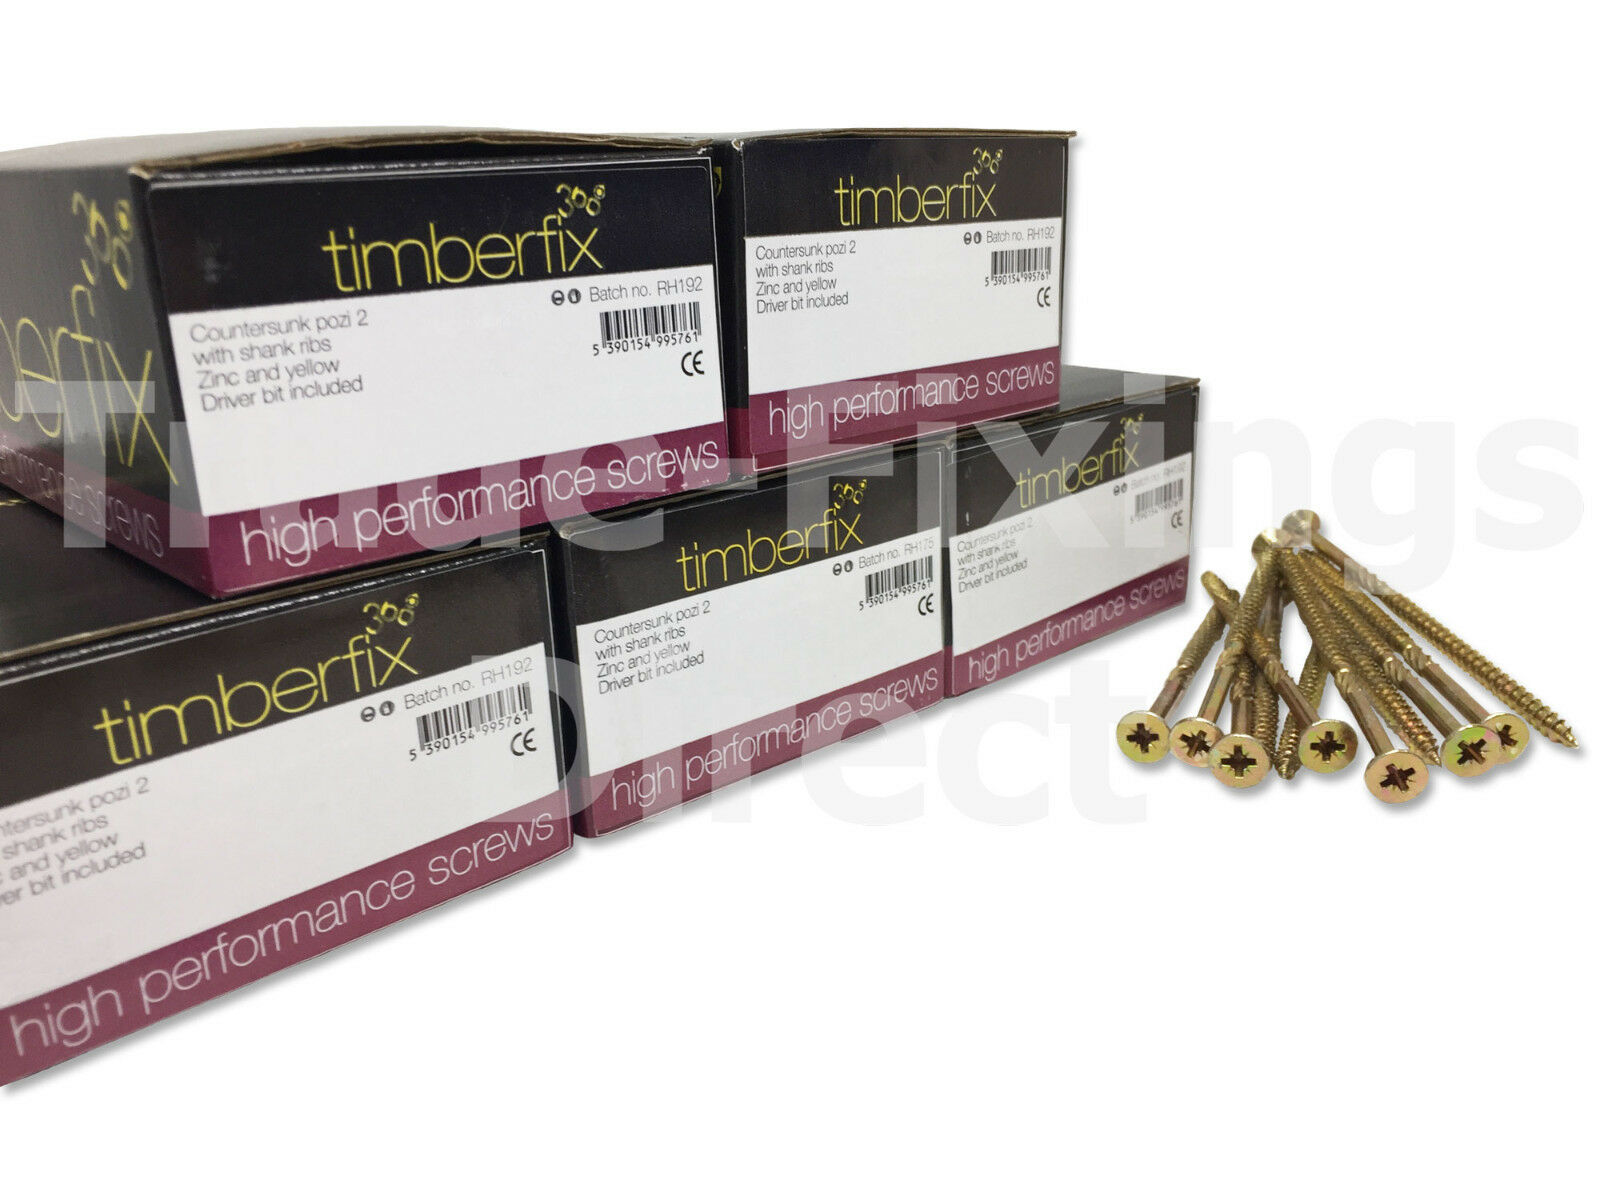 FULL CASES OF 8g (4.0mm) Timberfix 360 Premium Cutter High Performnce Wood Screw